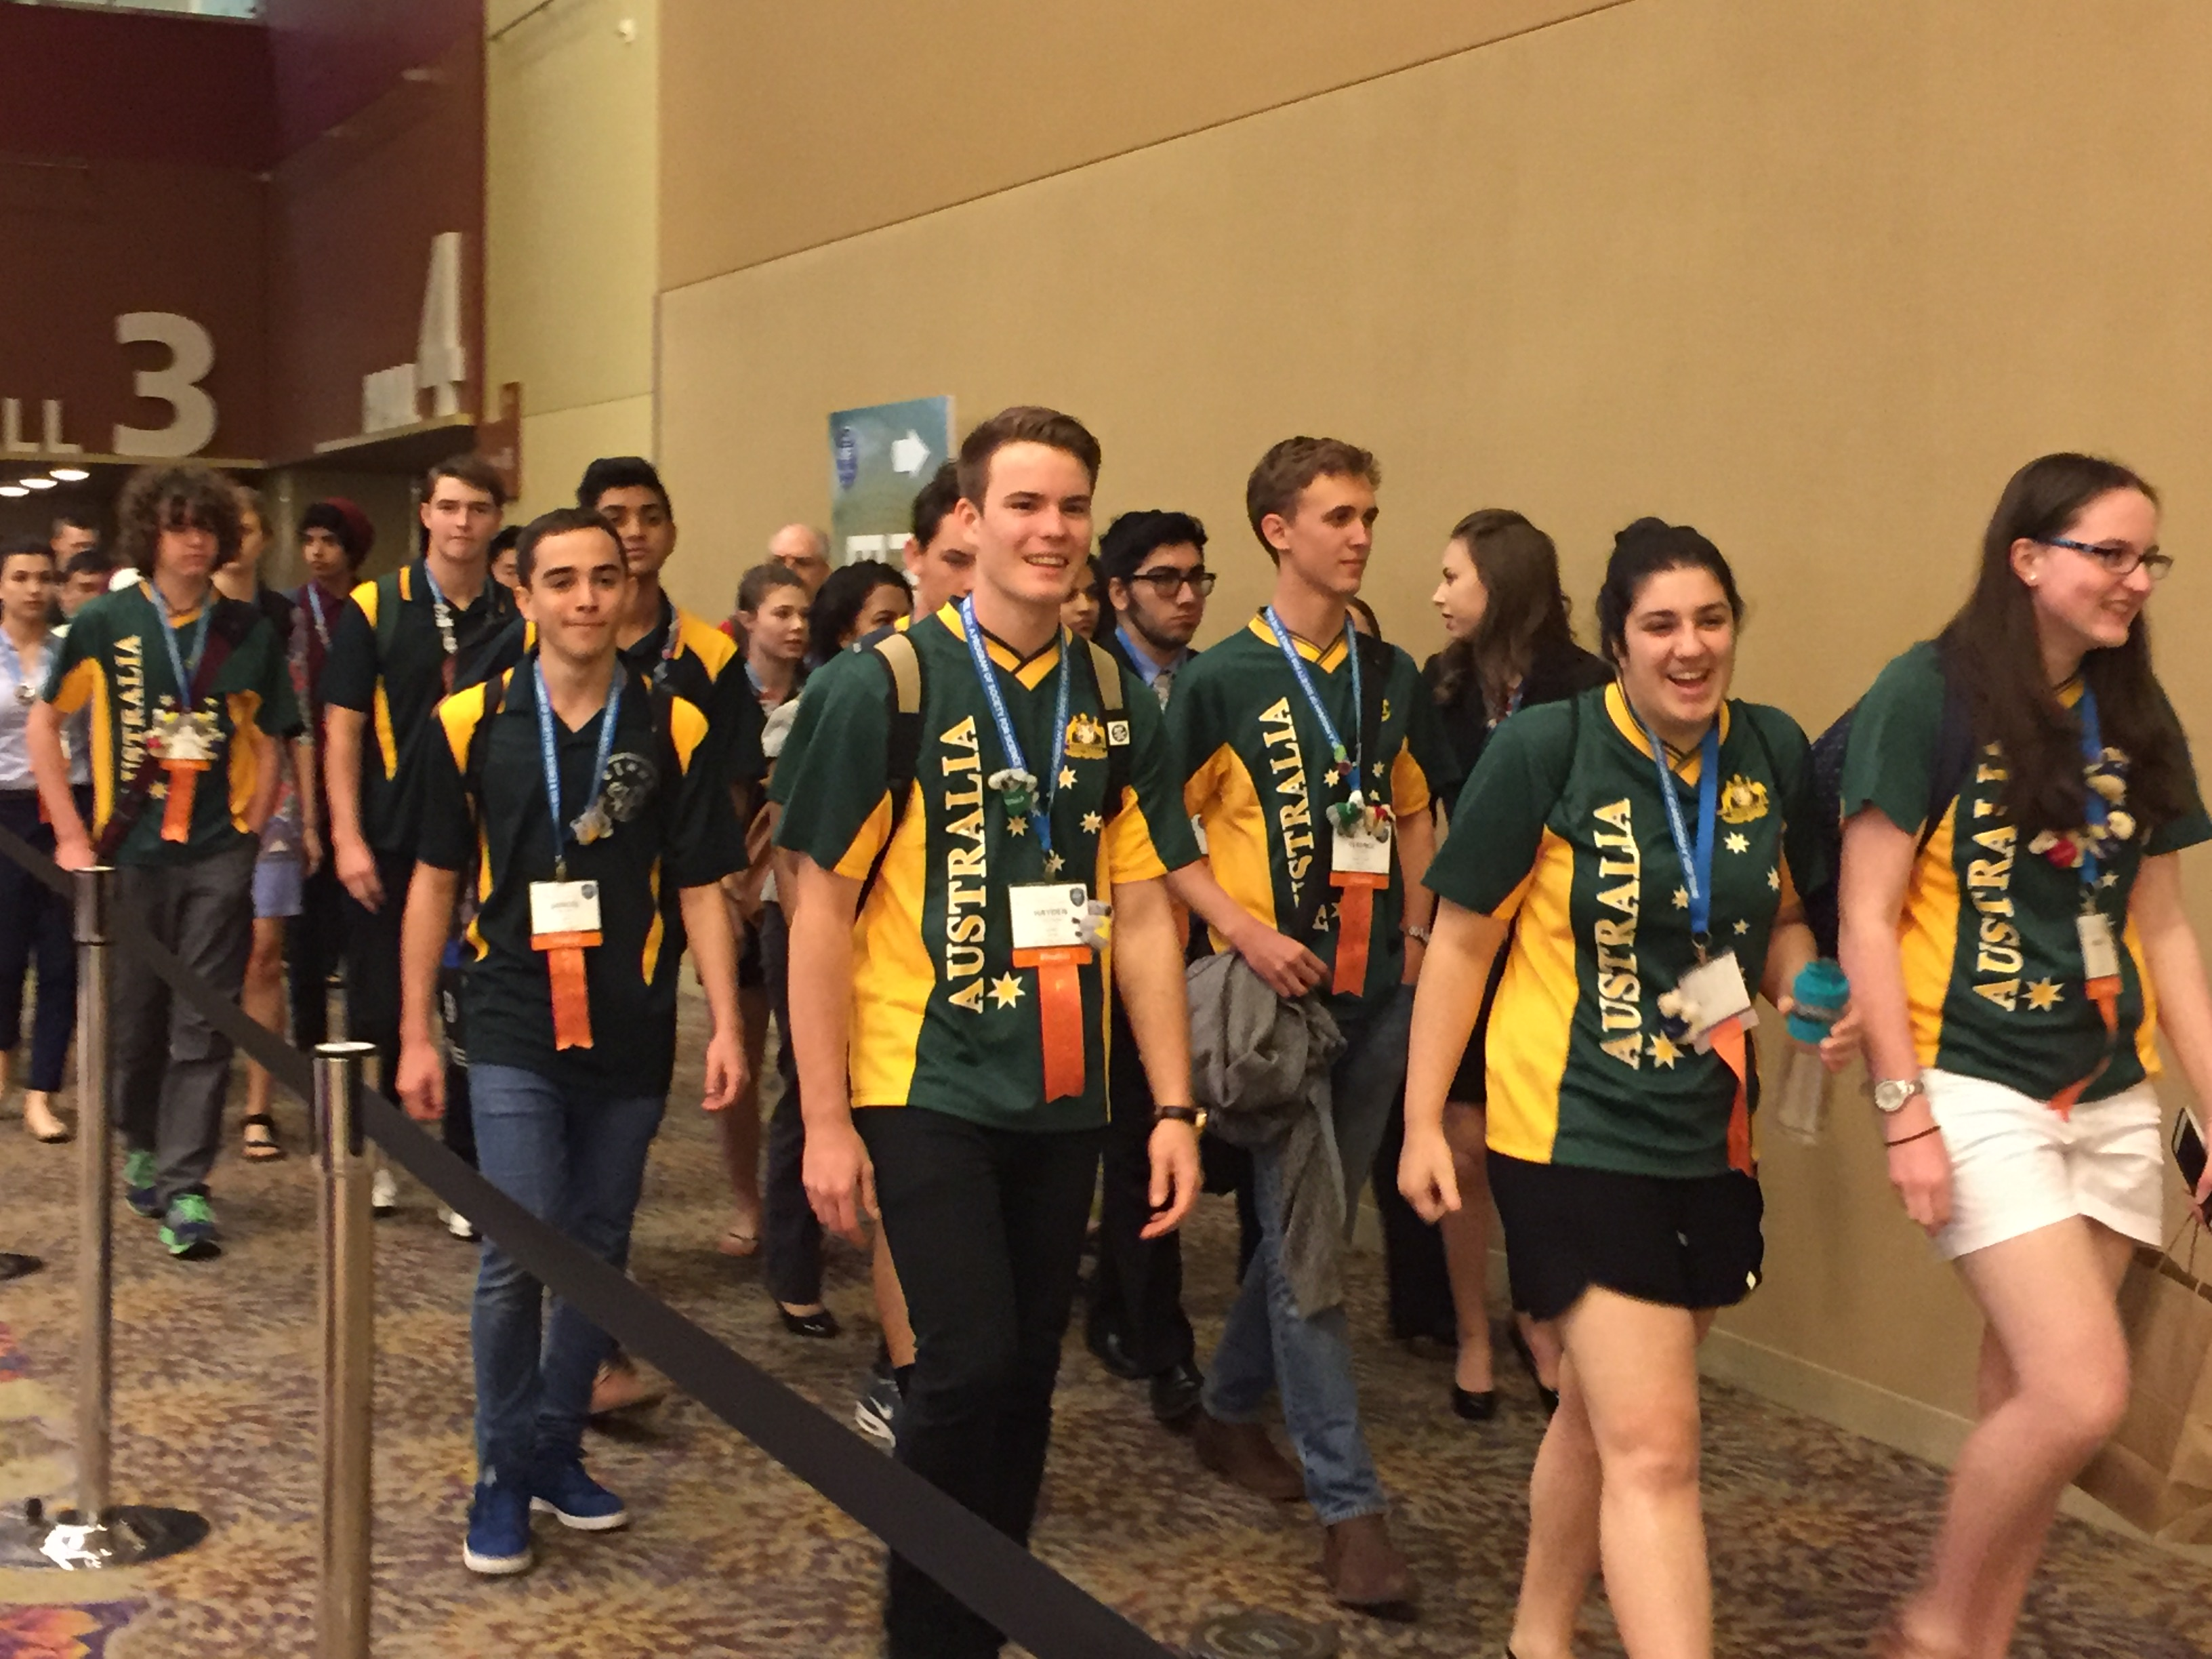 Australia students at the Intel International Science and Engineering Fair